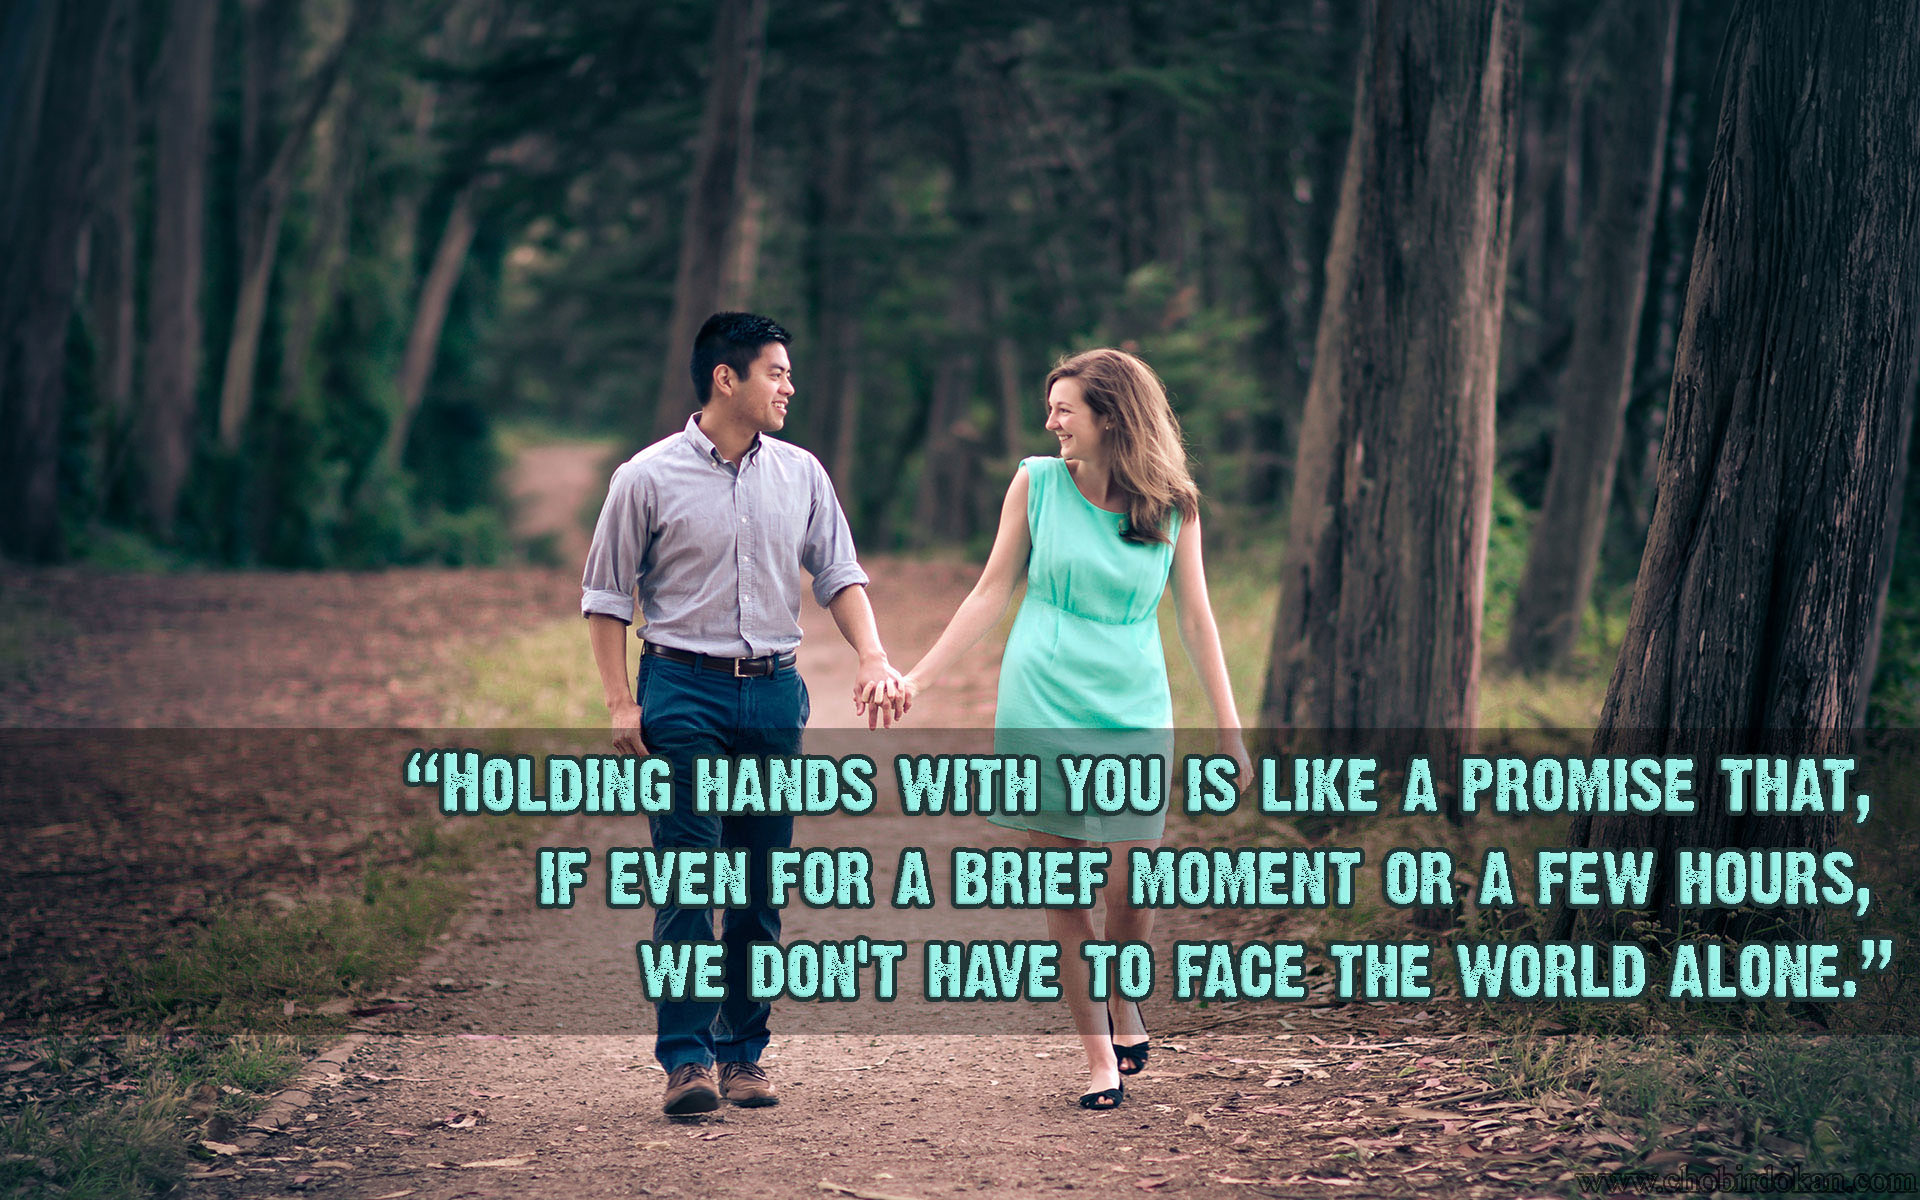 cute Love couple Wallpaper With Quotes : Images of cute Love couple Holding Hands with Quotes